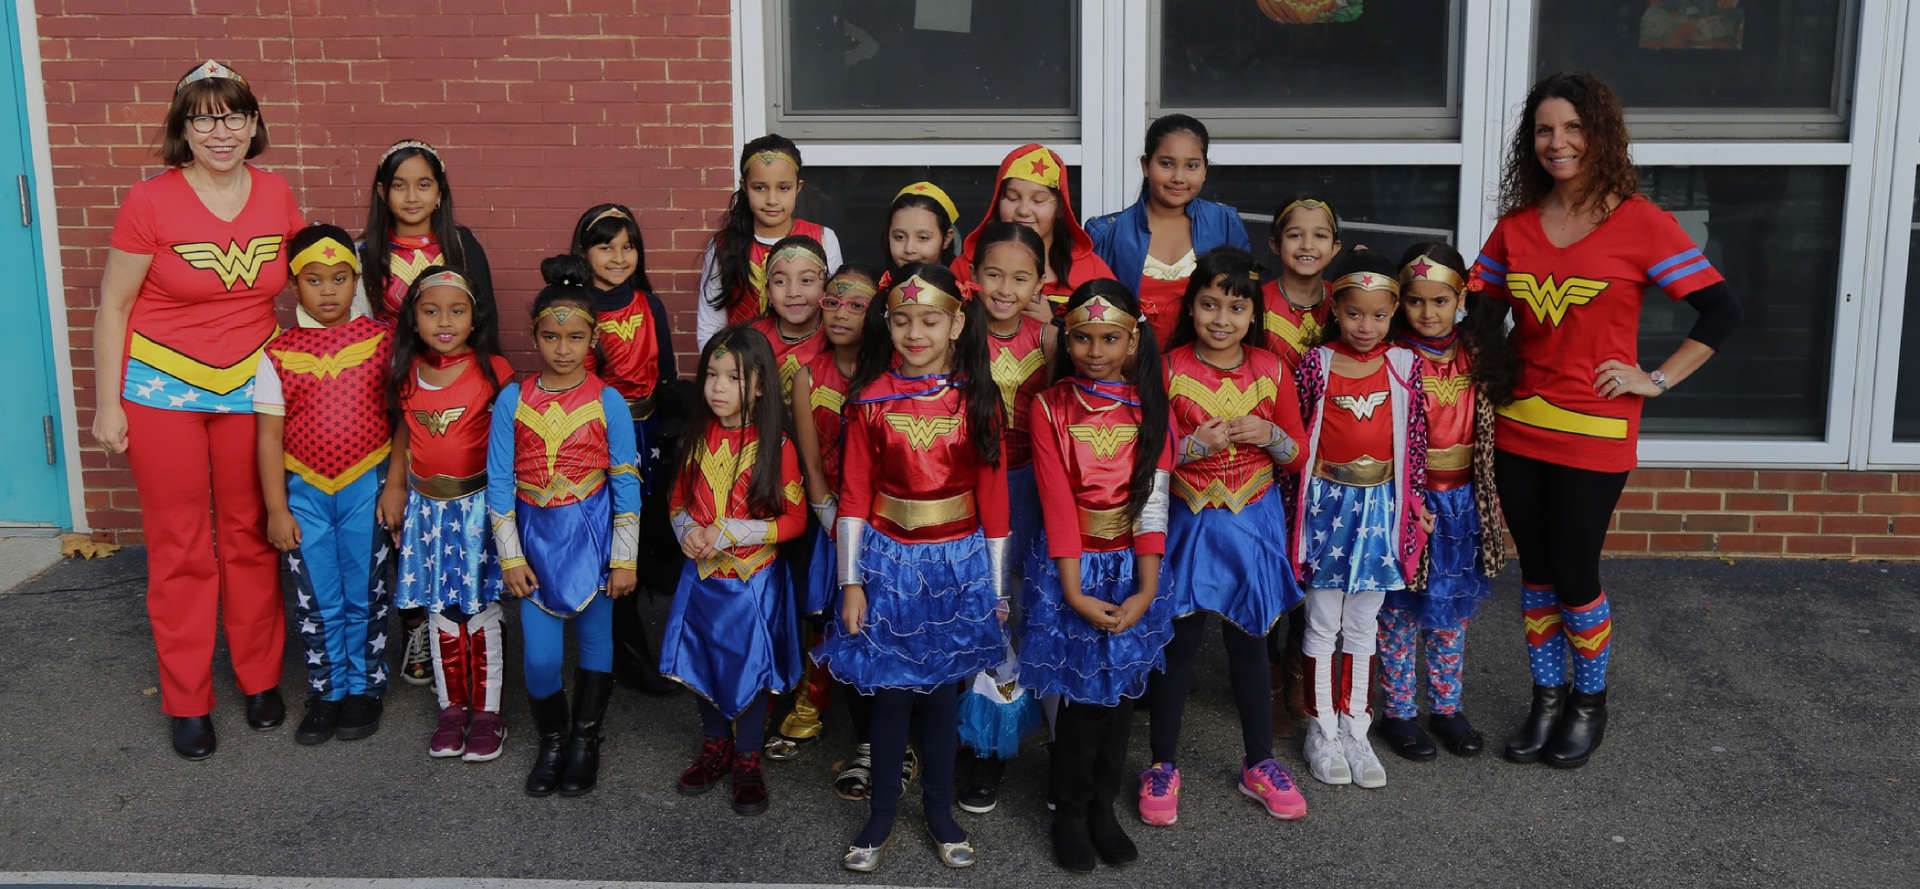 Students and two faculty members dressed in Wonder Woman outfits